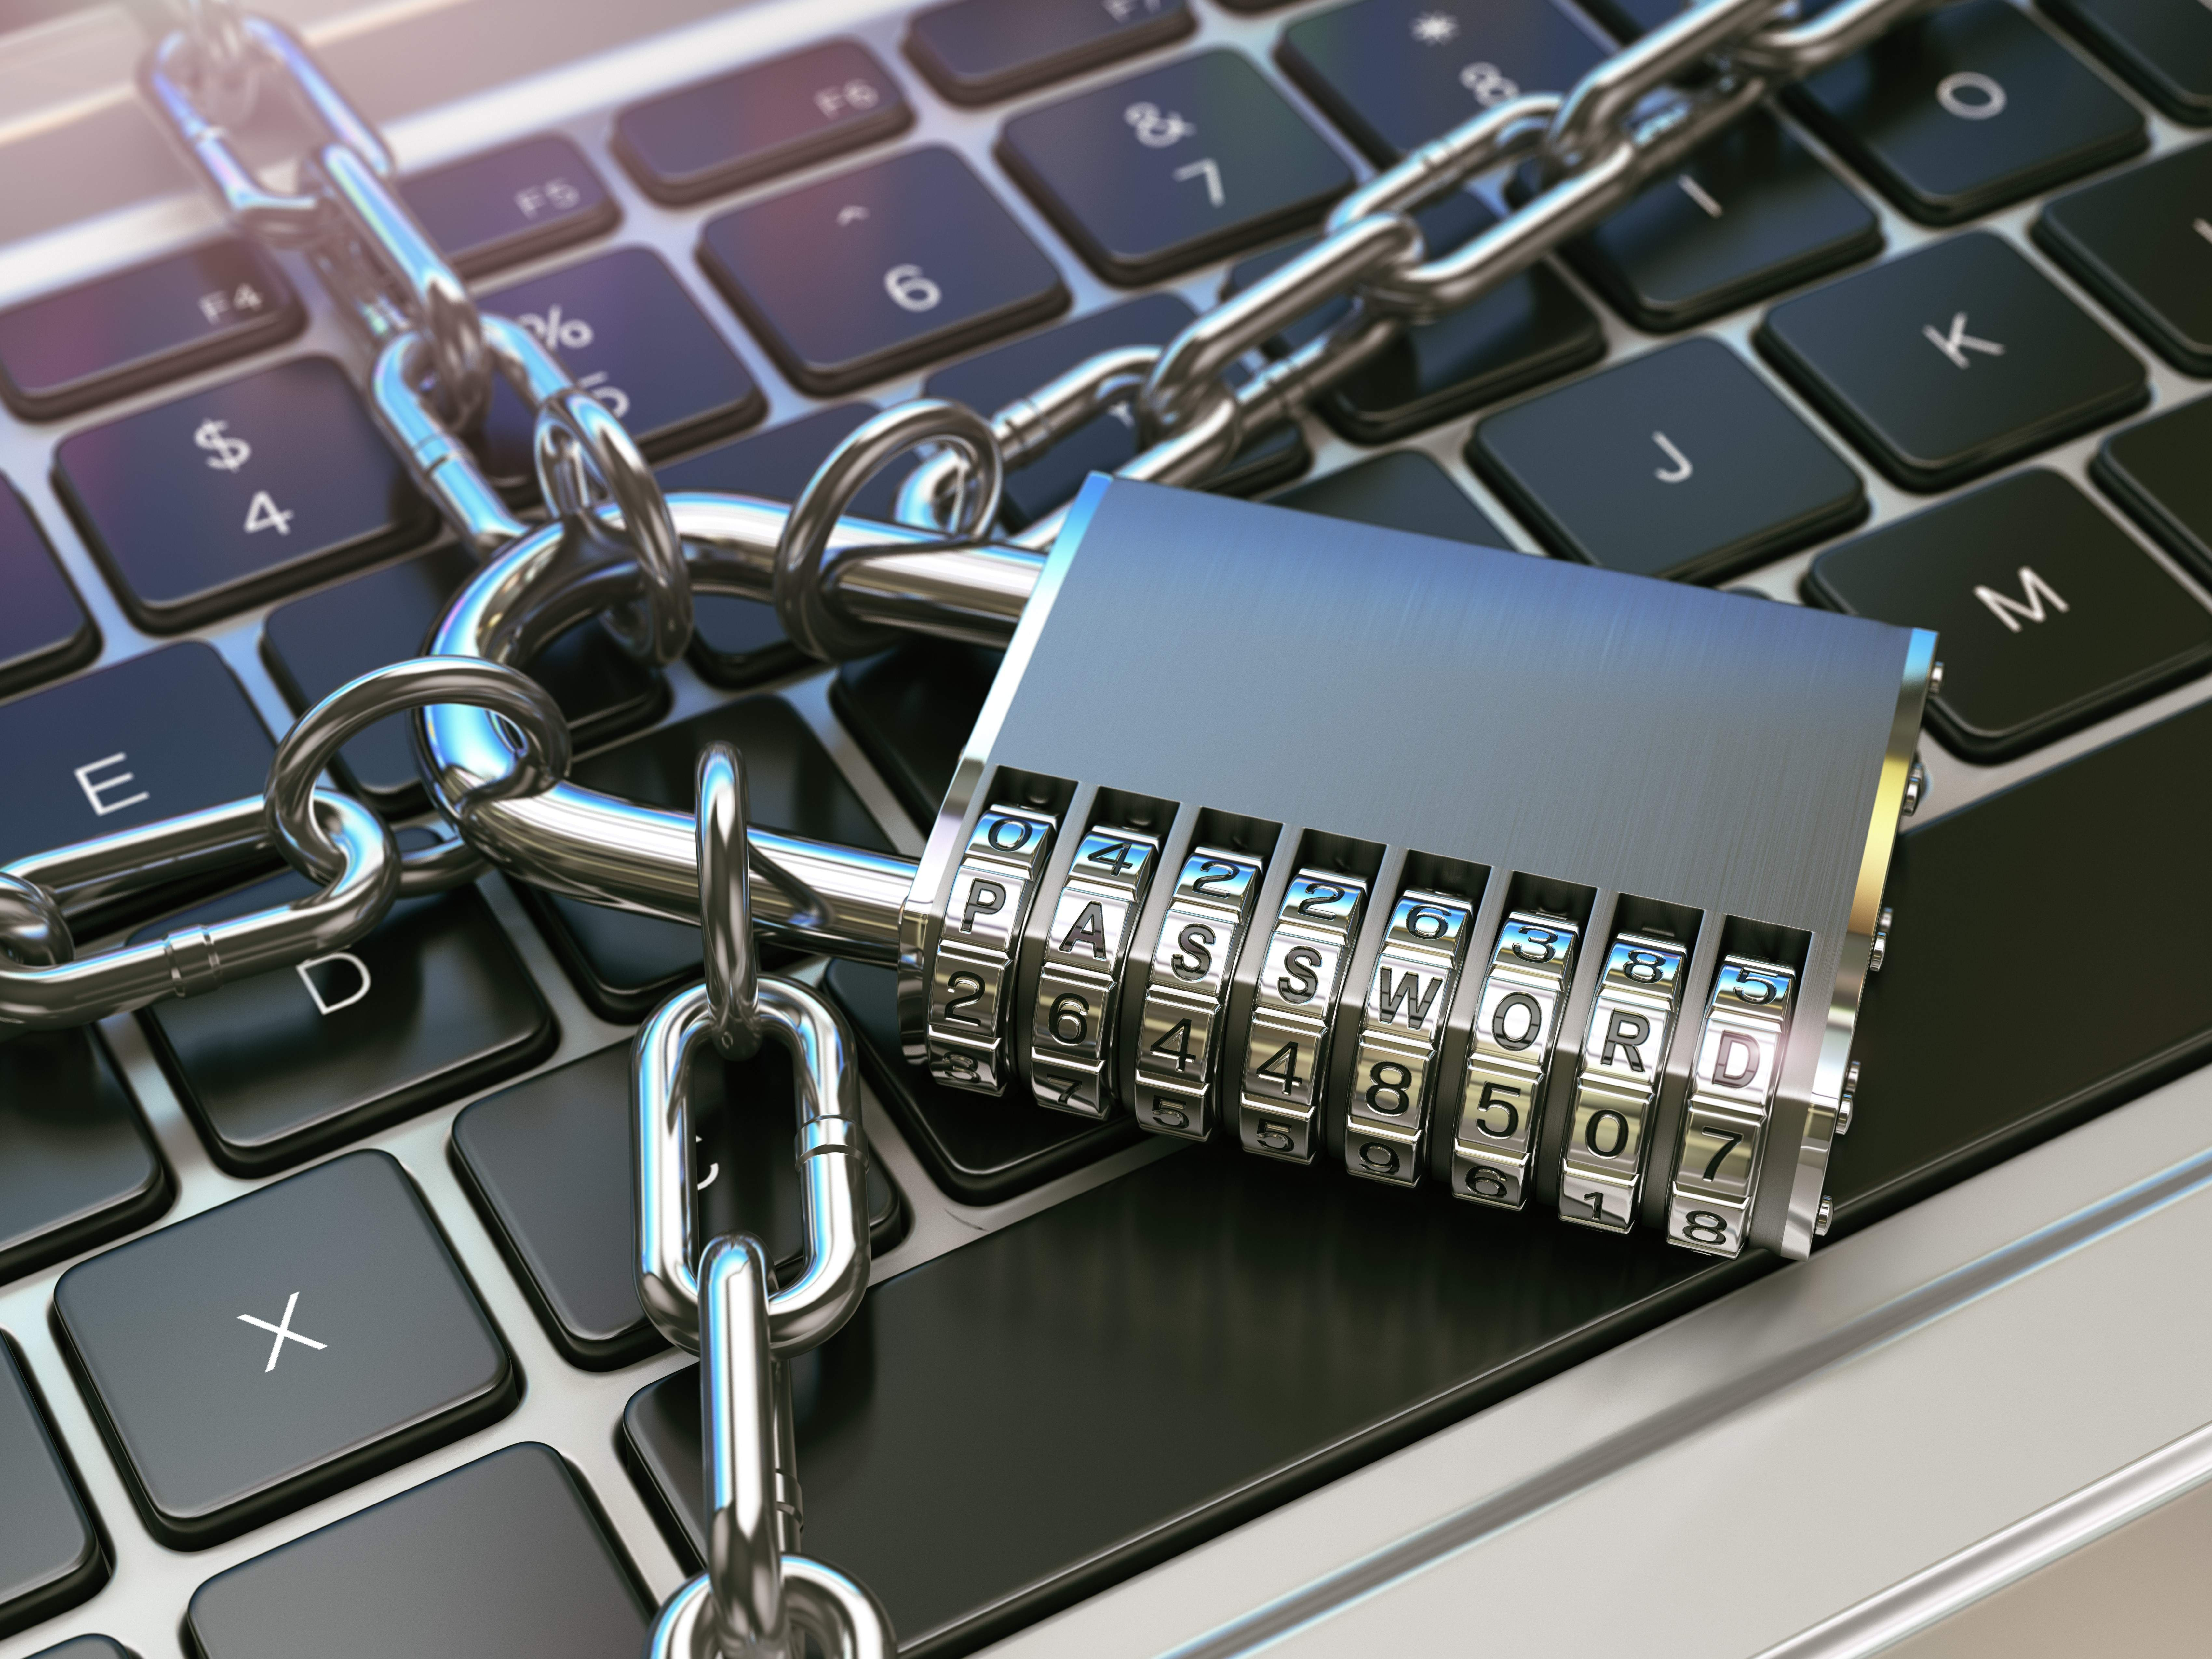 Internet security: Email safe practices